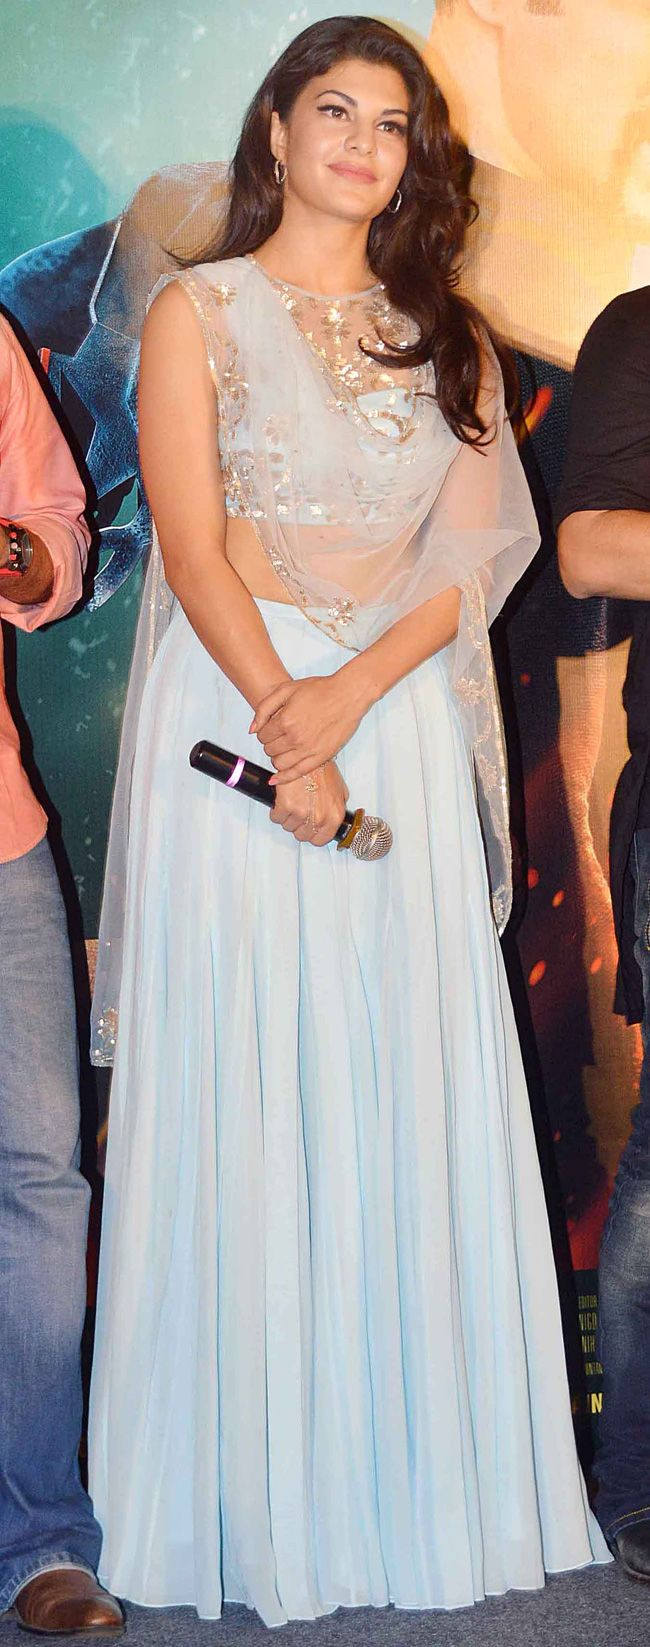 Jacqueline Fernandez looked stunning in sky blue outfit at 'Kick' trailer launch.